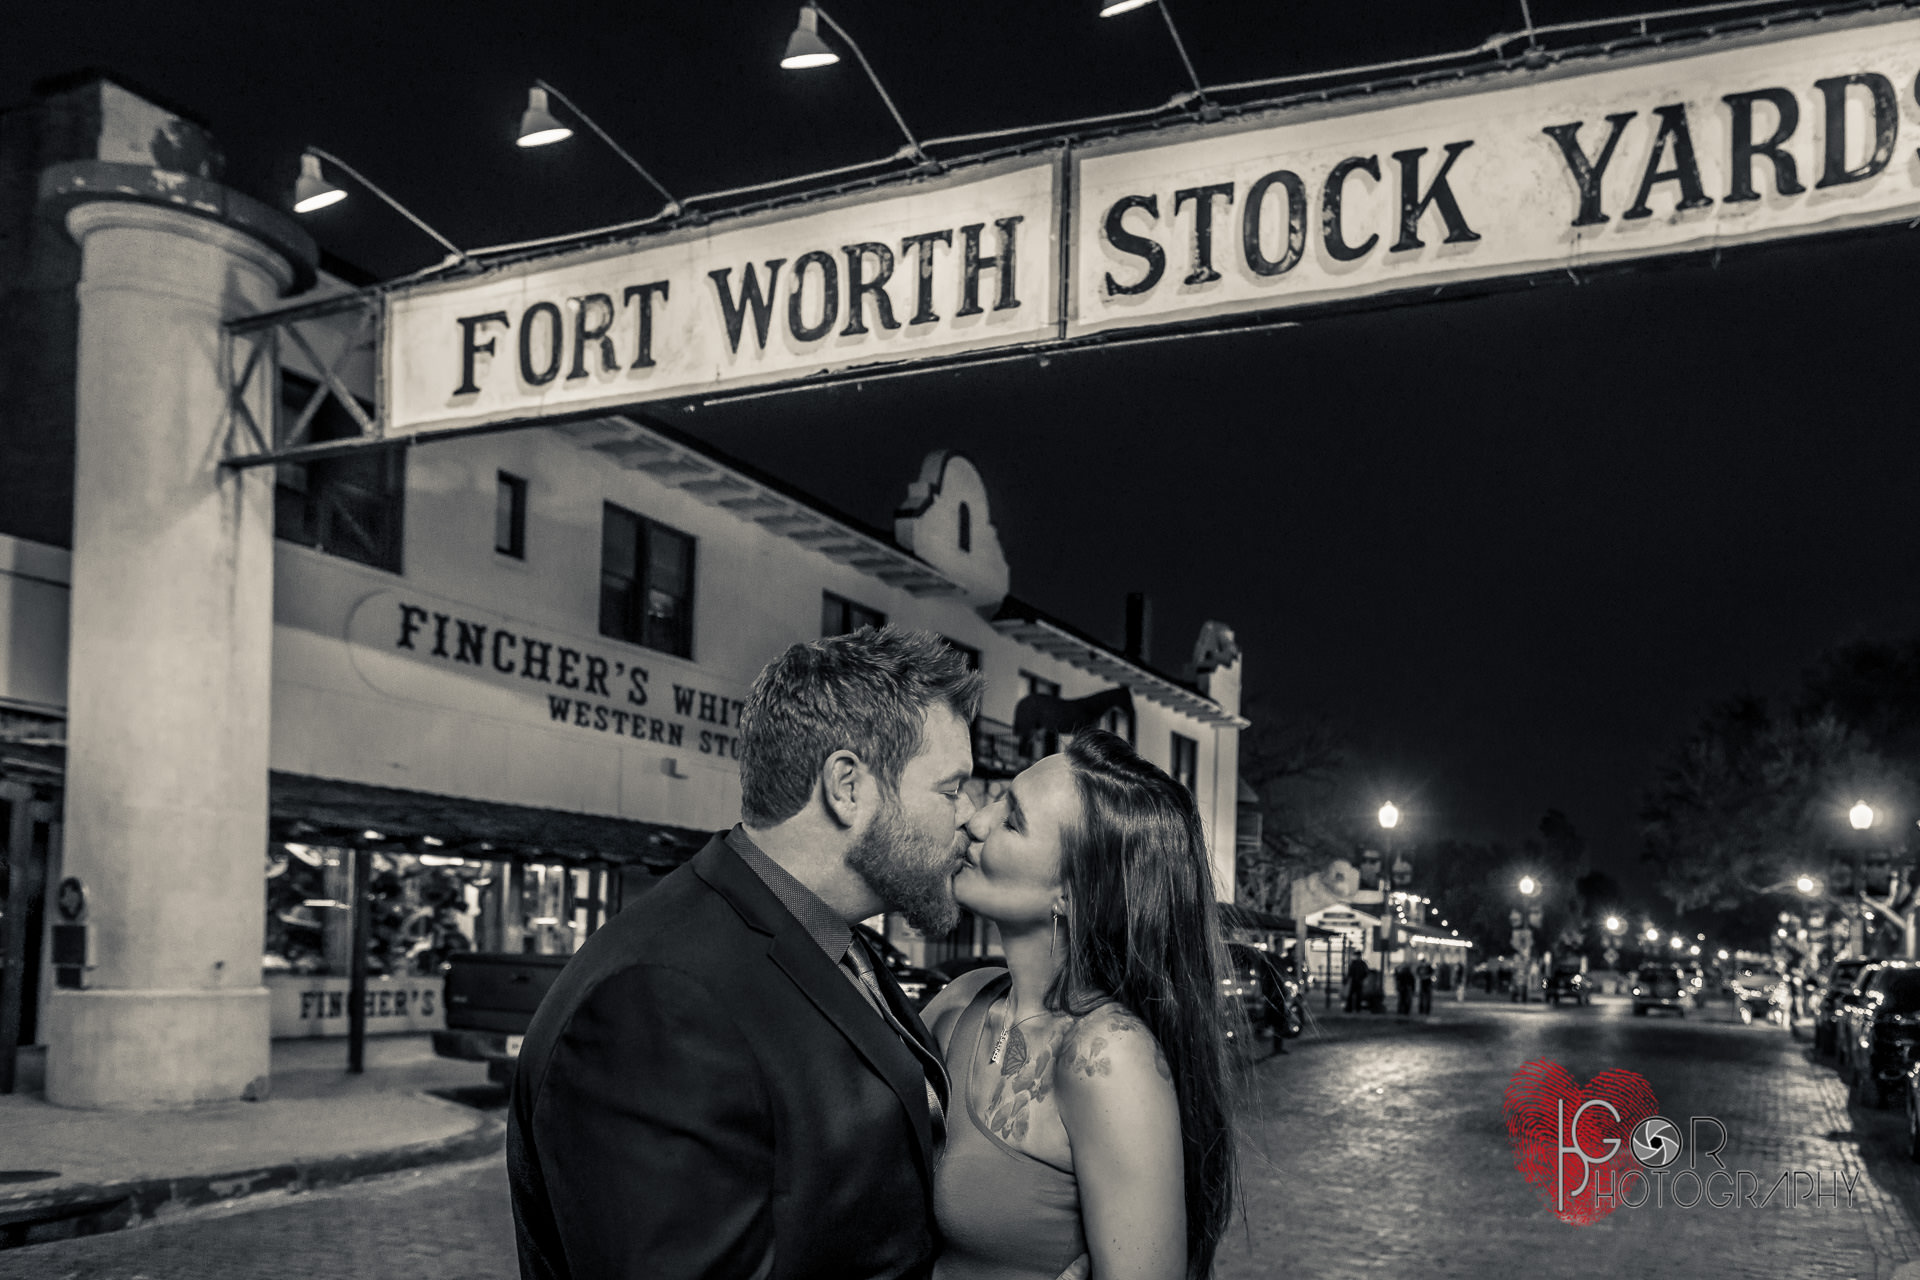 Fort Worth Stockyards Session